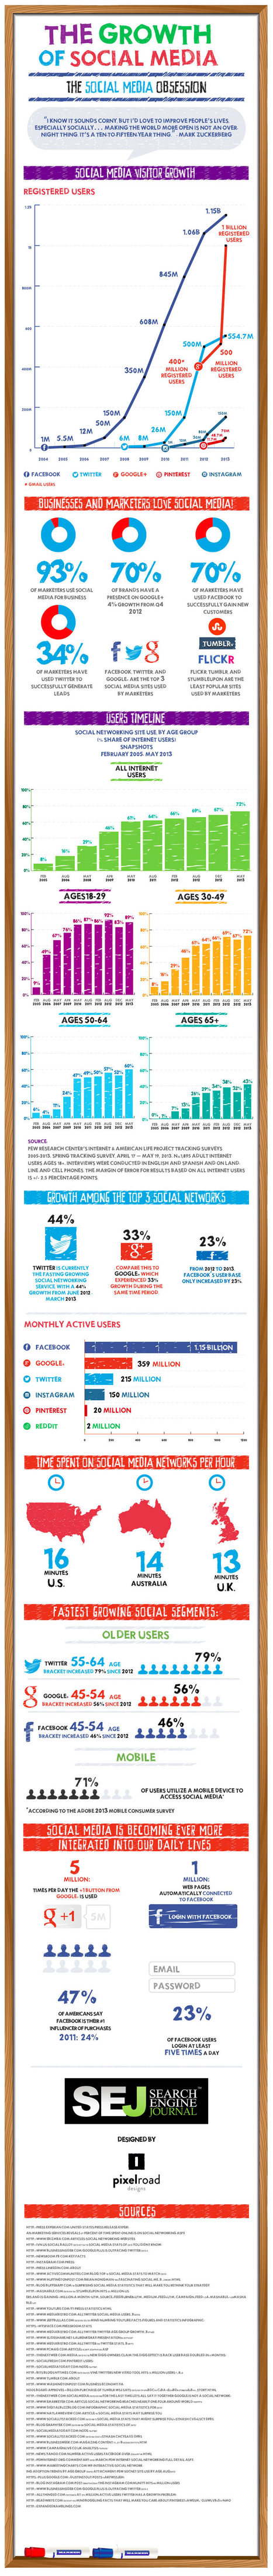 The Growth and Obsession of Social Media Management an infographic /@BerriePelser | EMPRESA 2.0 | Scoop.it